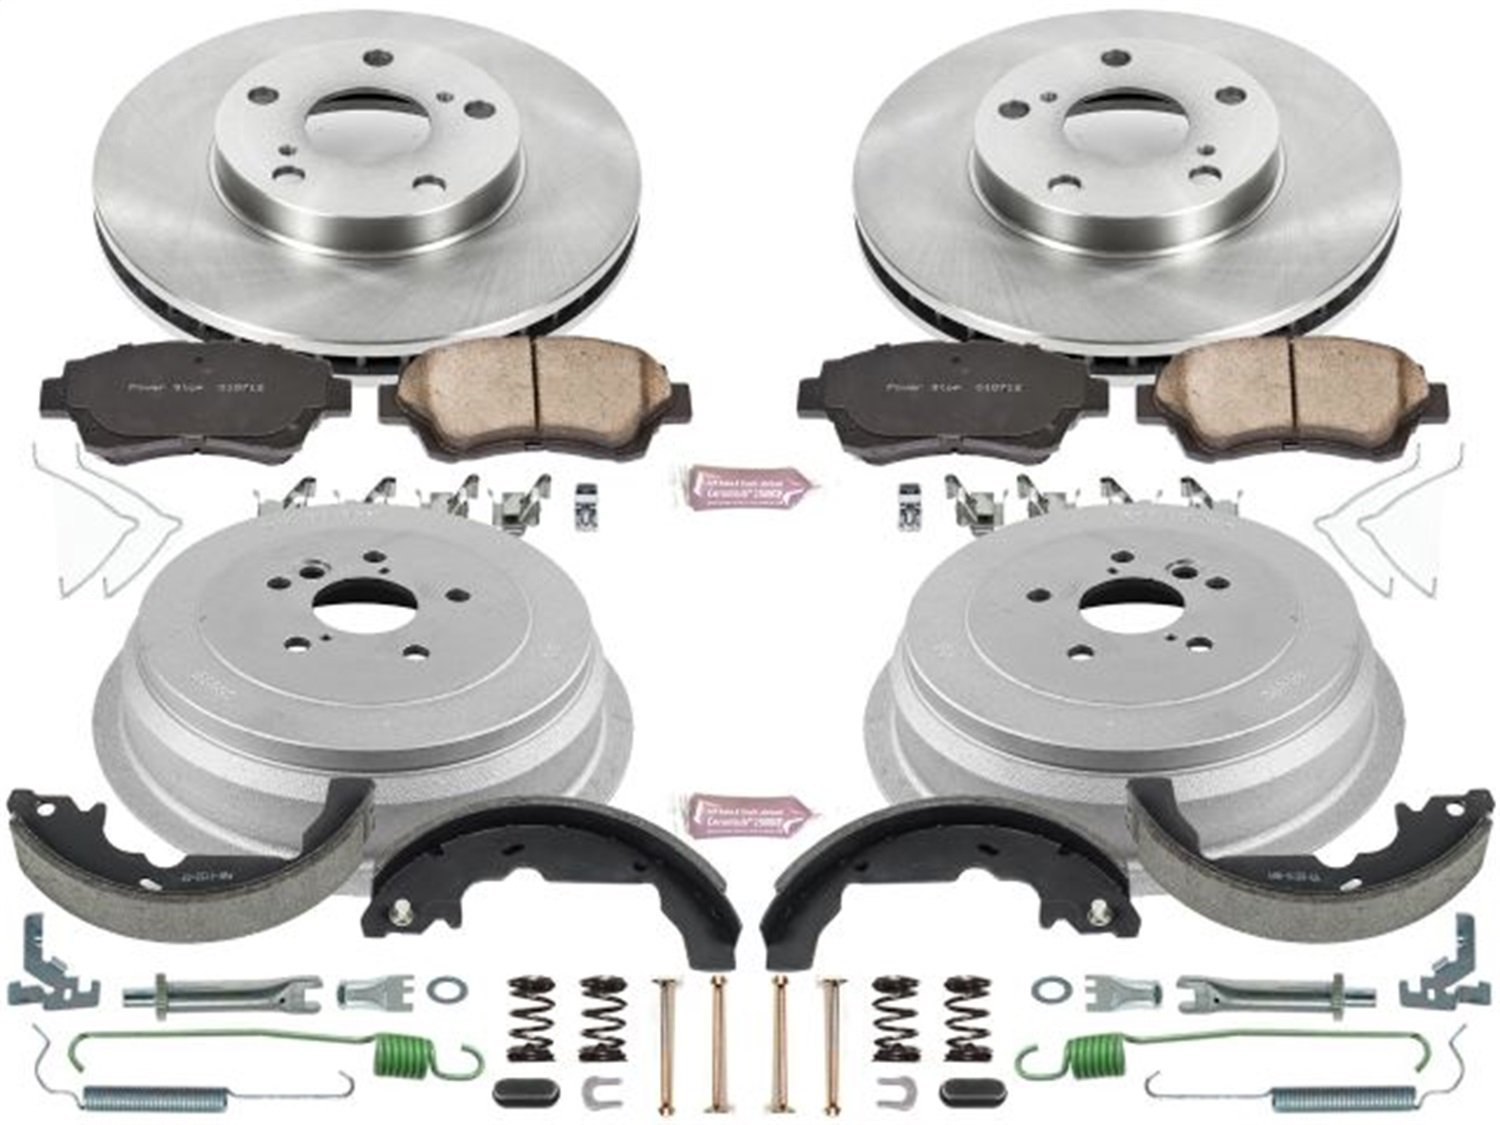 Rotor Power Stop Front /& Rear KOE15179DK Autospecialty Daily Driver Pad Drum and Shoe Kits